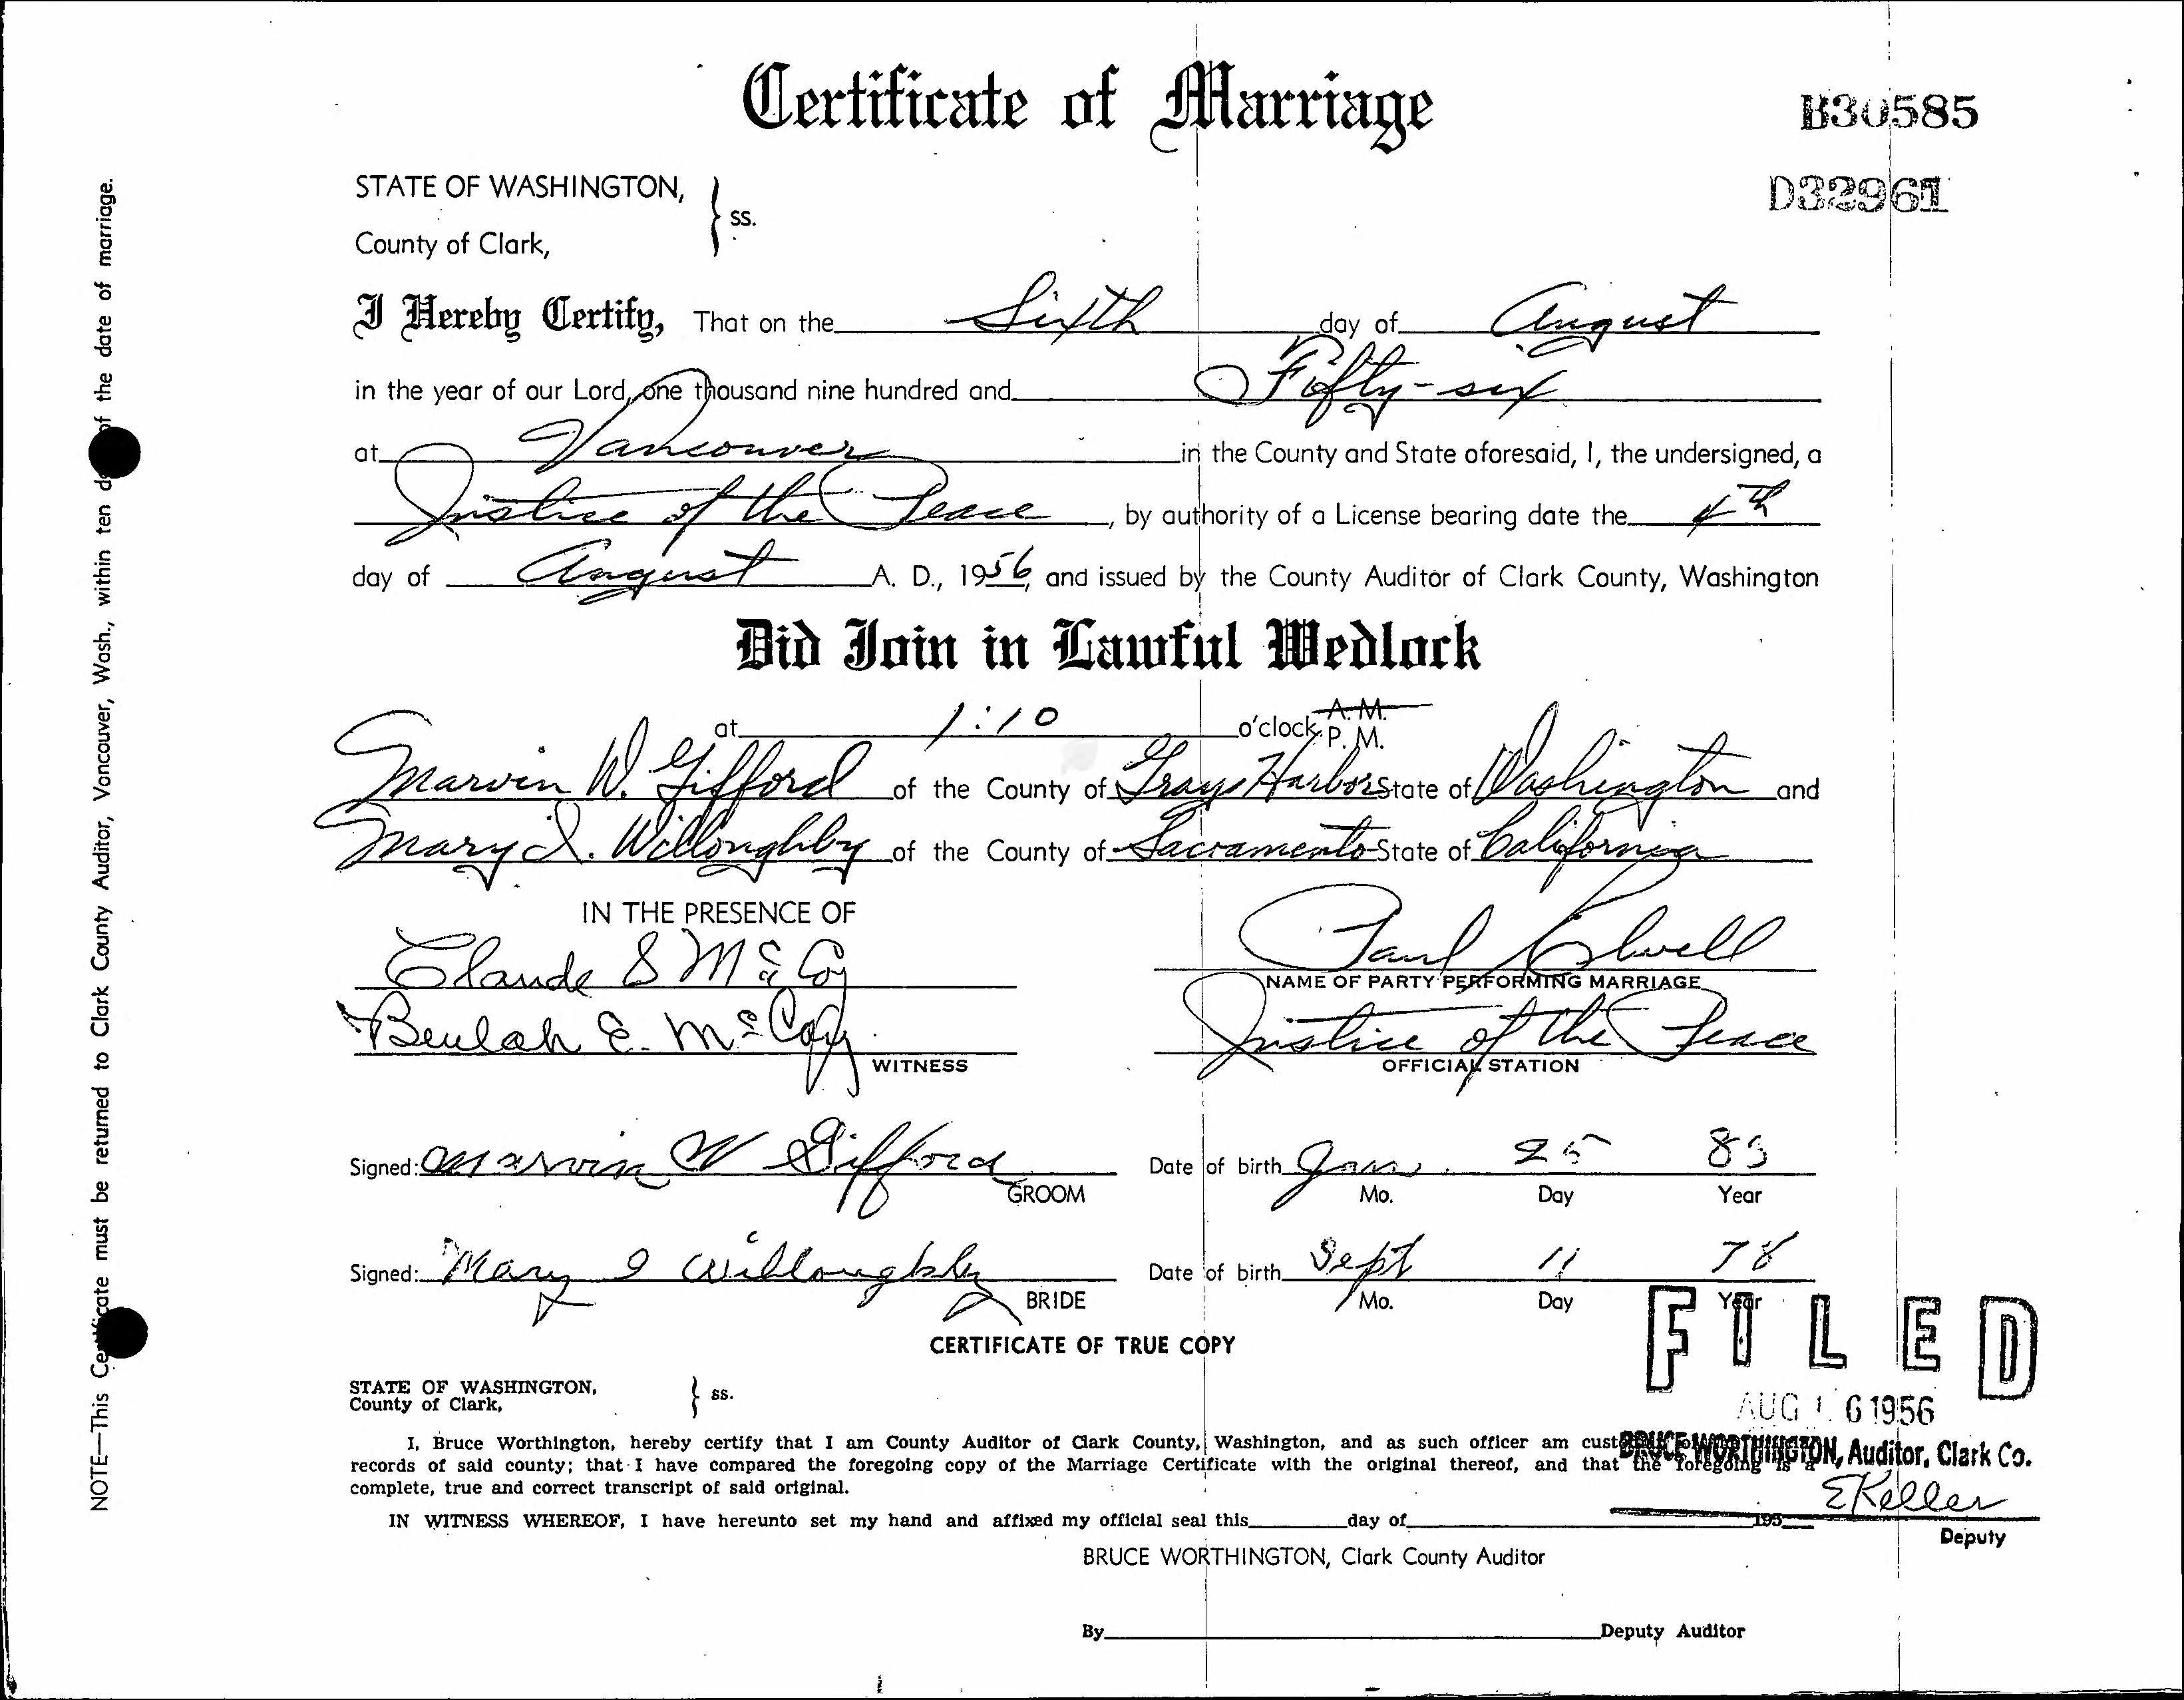 Documents Mary Ida Stuart And Marvin Gifford Marriage Certificate